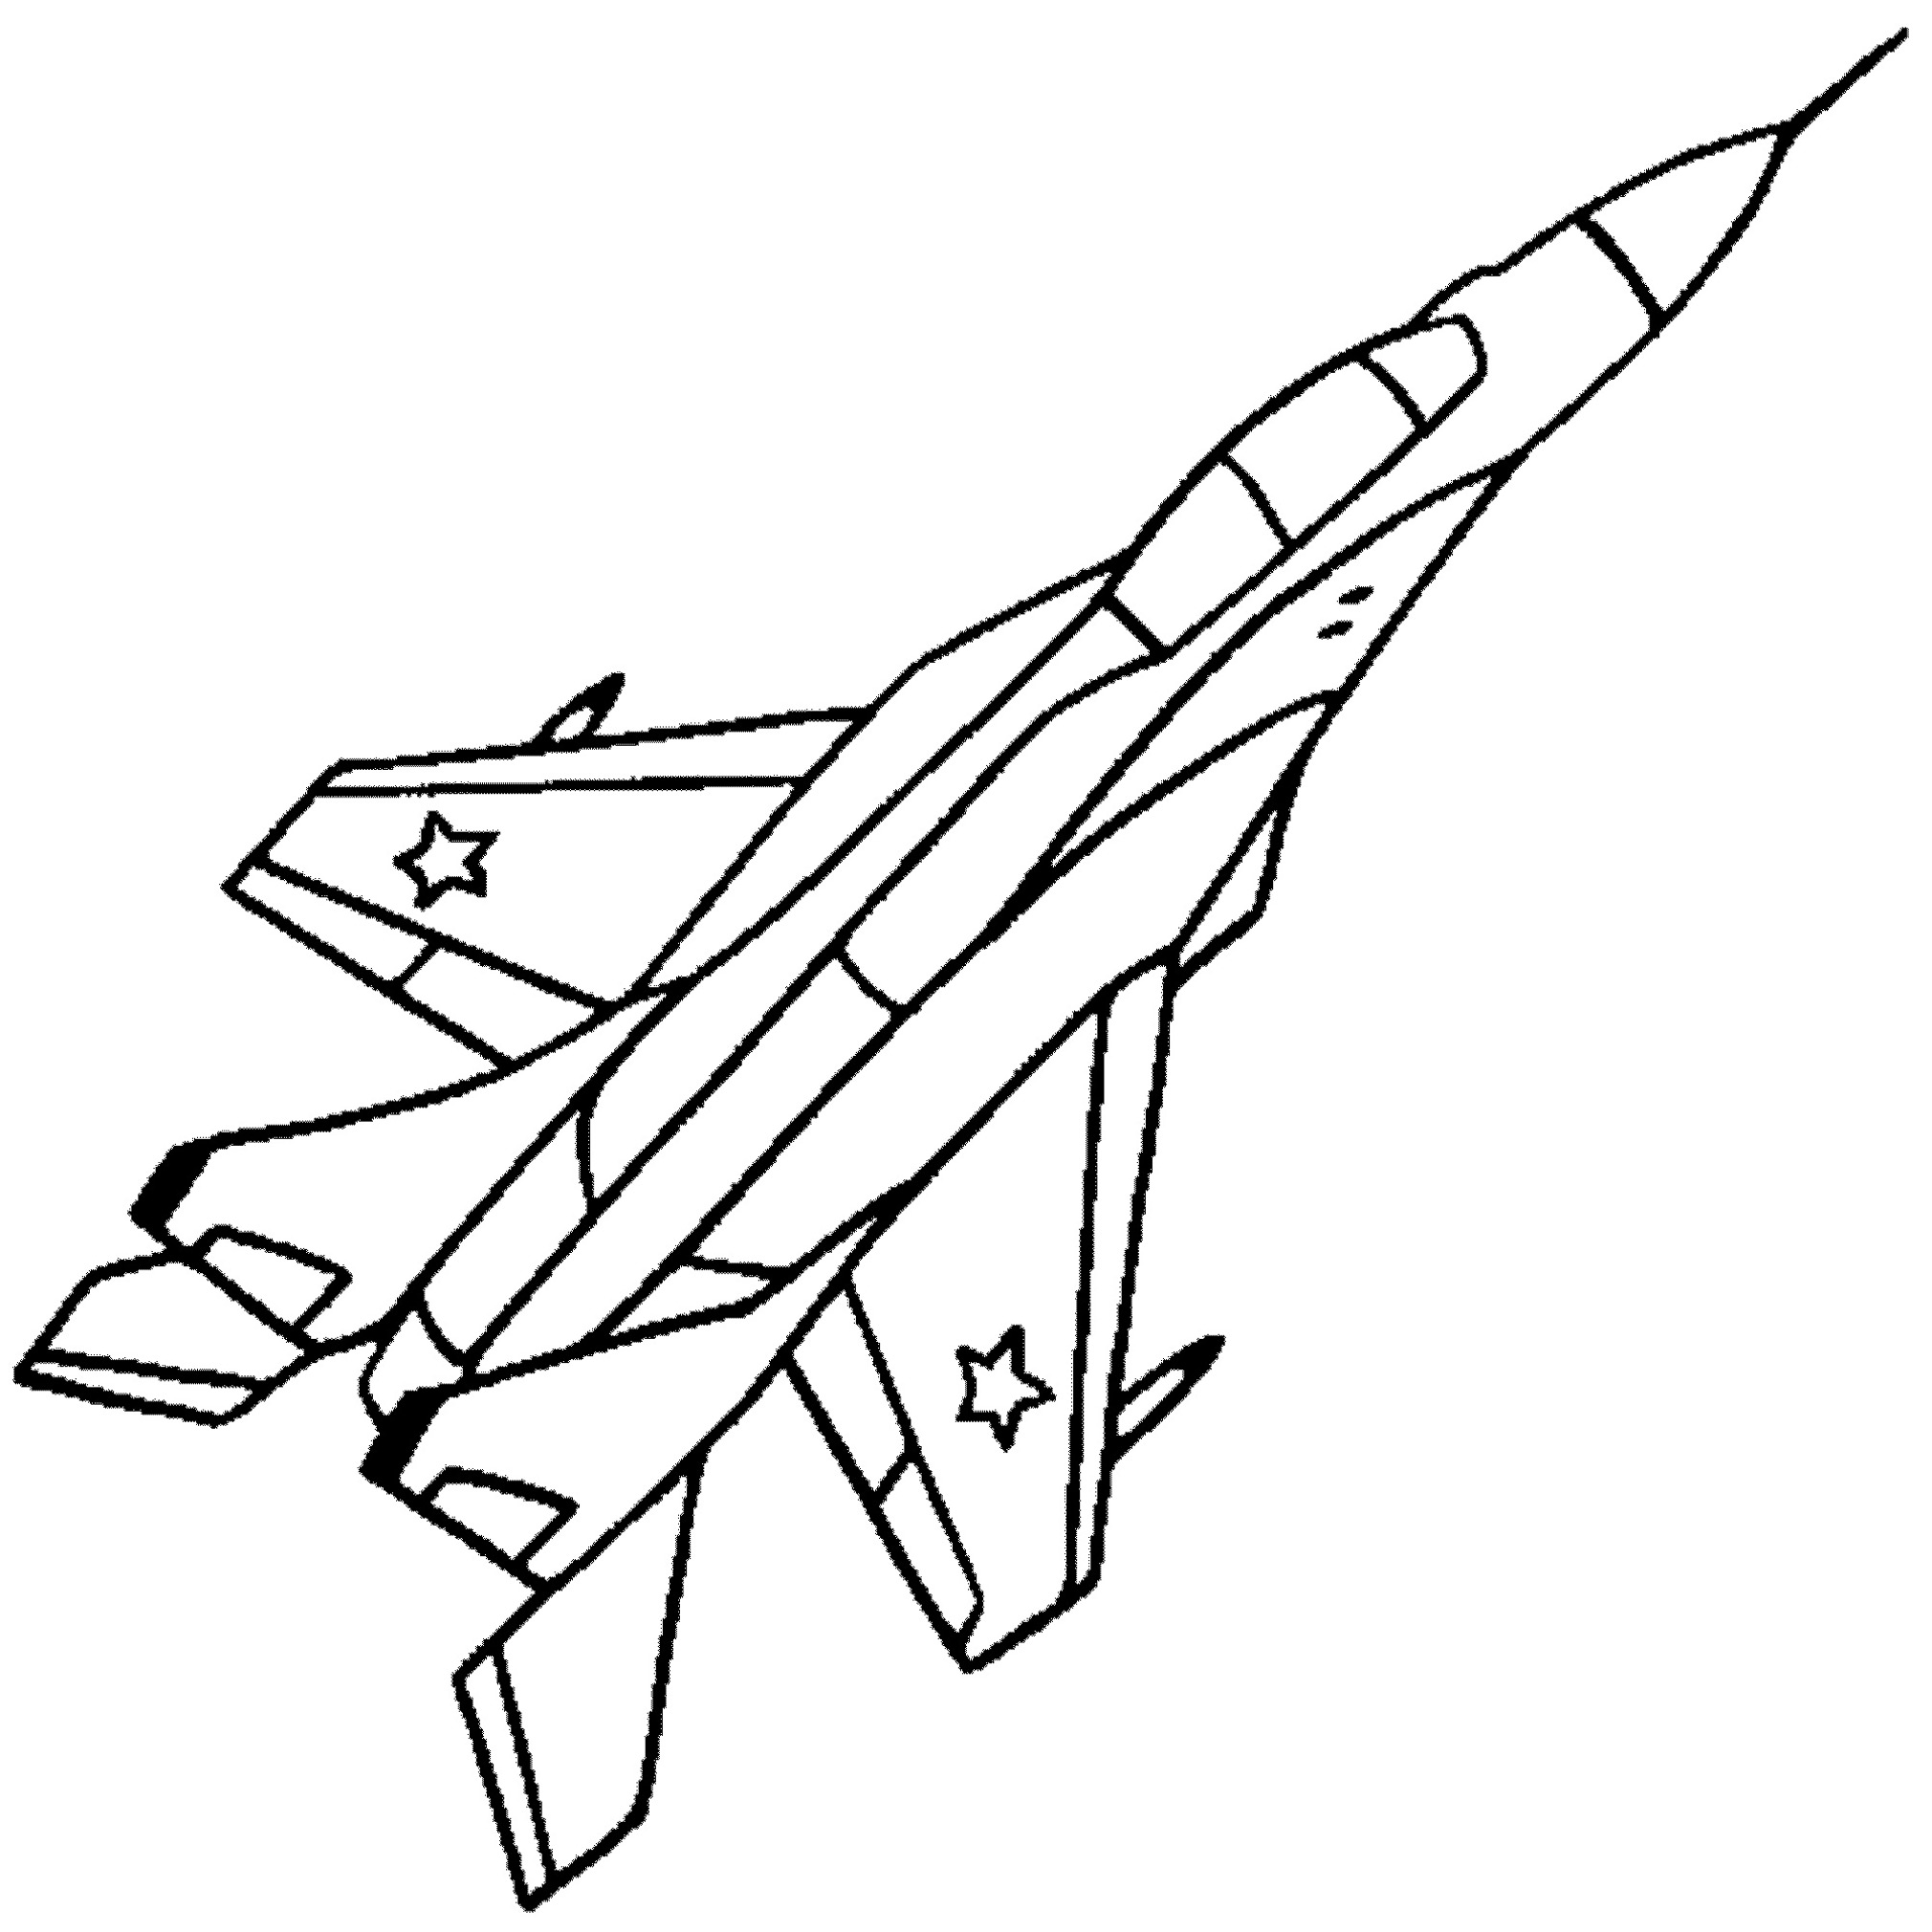 2020x2020 Jet Coloring Pages For Kids